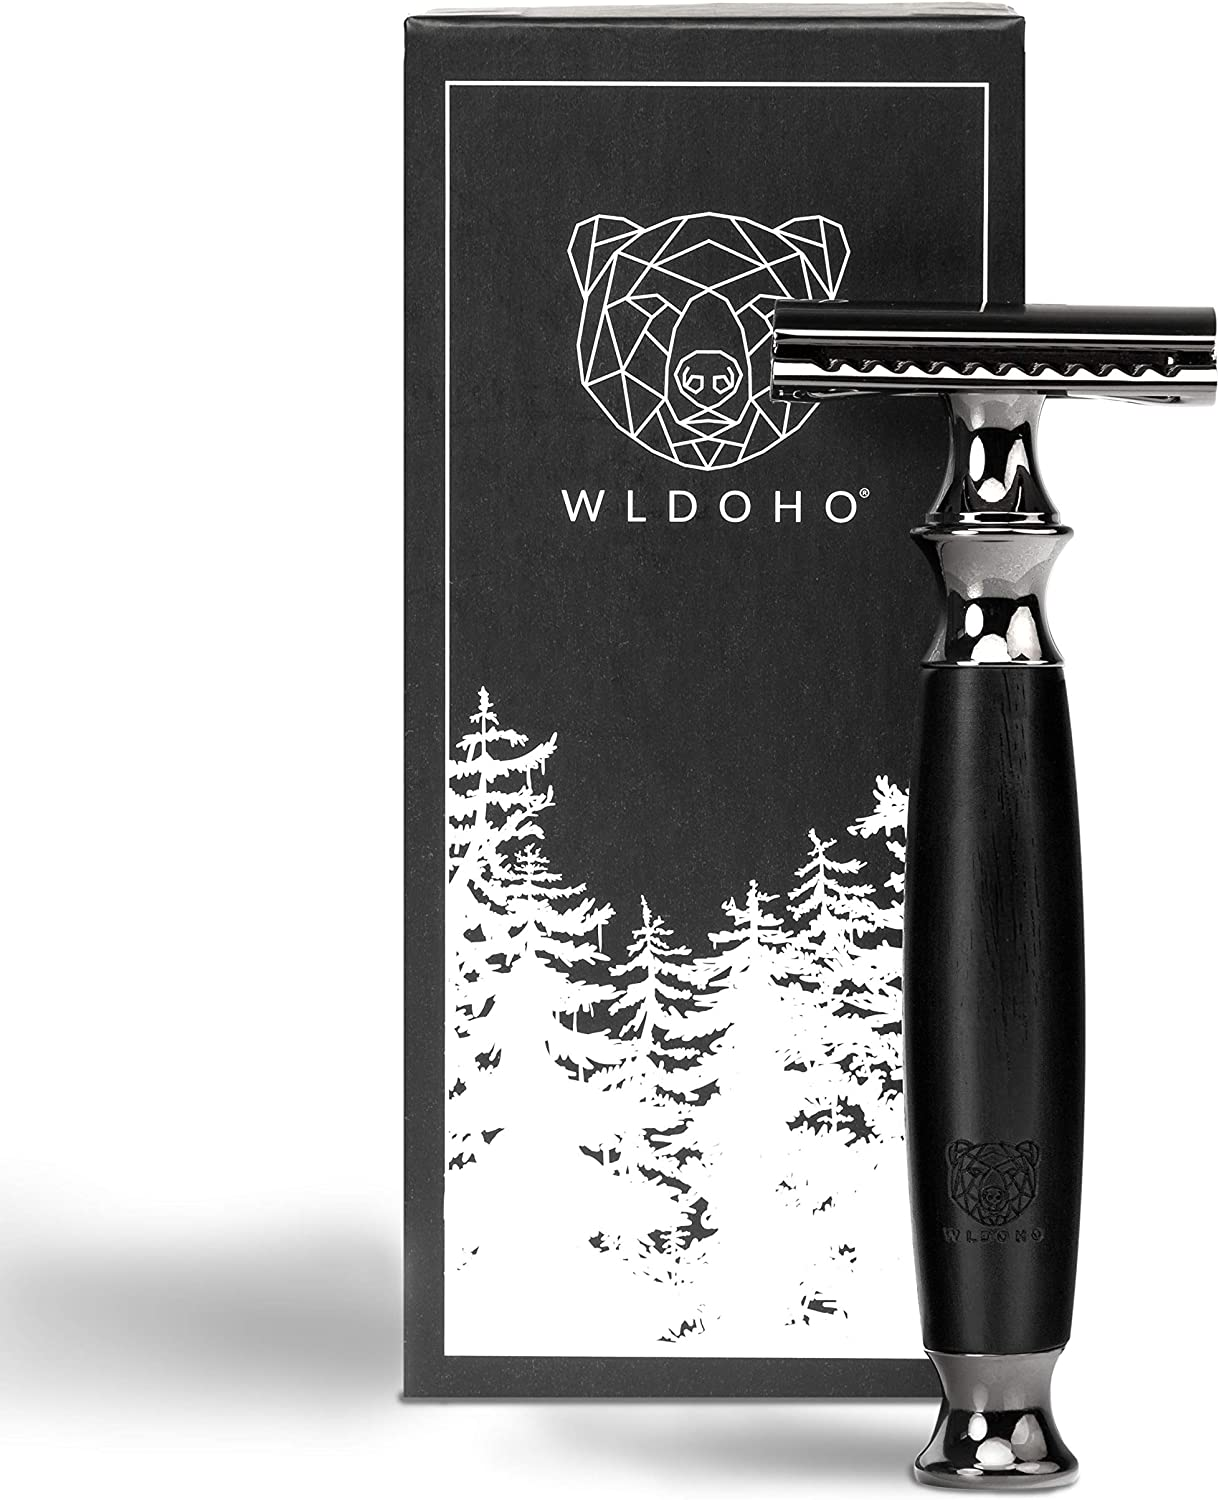 WLDOHO® Double Edge Safety Razor with Natural Ebony Wood Handle for a Gentle Shaving, Zero Waste & Plastic Free I Reusable Eco Razor for Women & Men I Traditional Shaver with 5 Blades